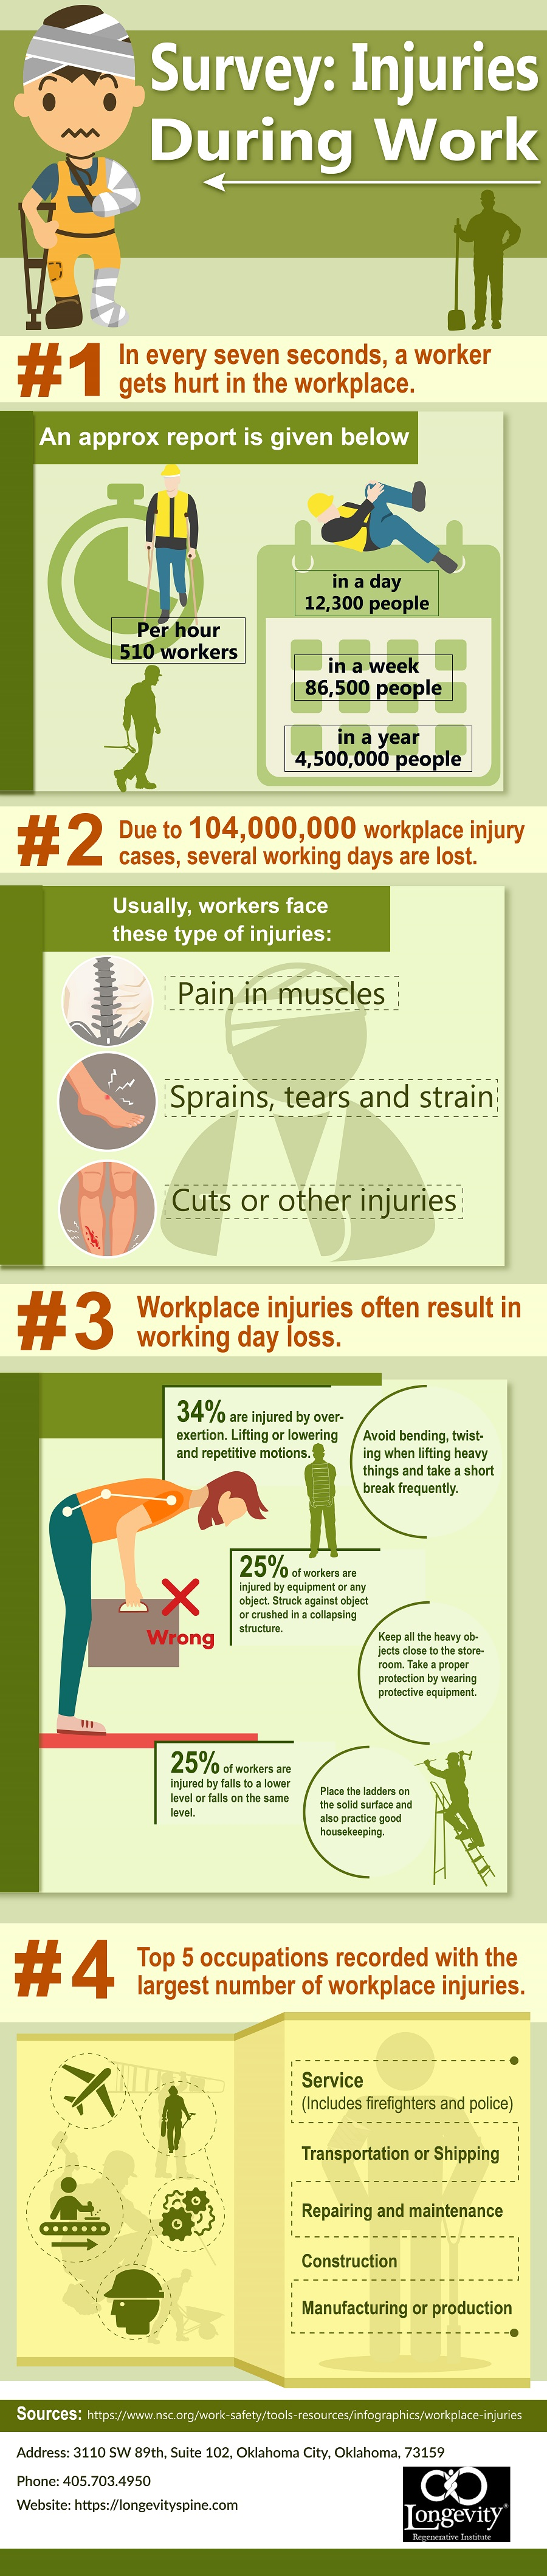 Survey - Injuries During Work.jpg